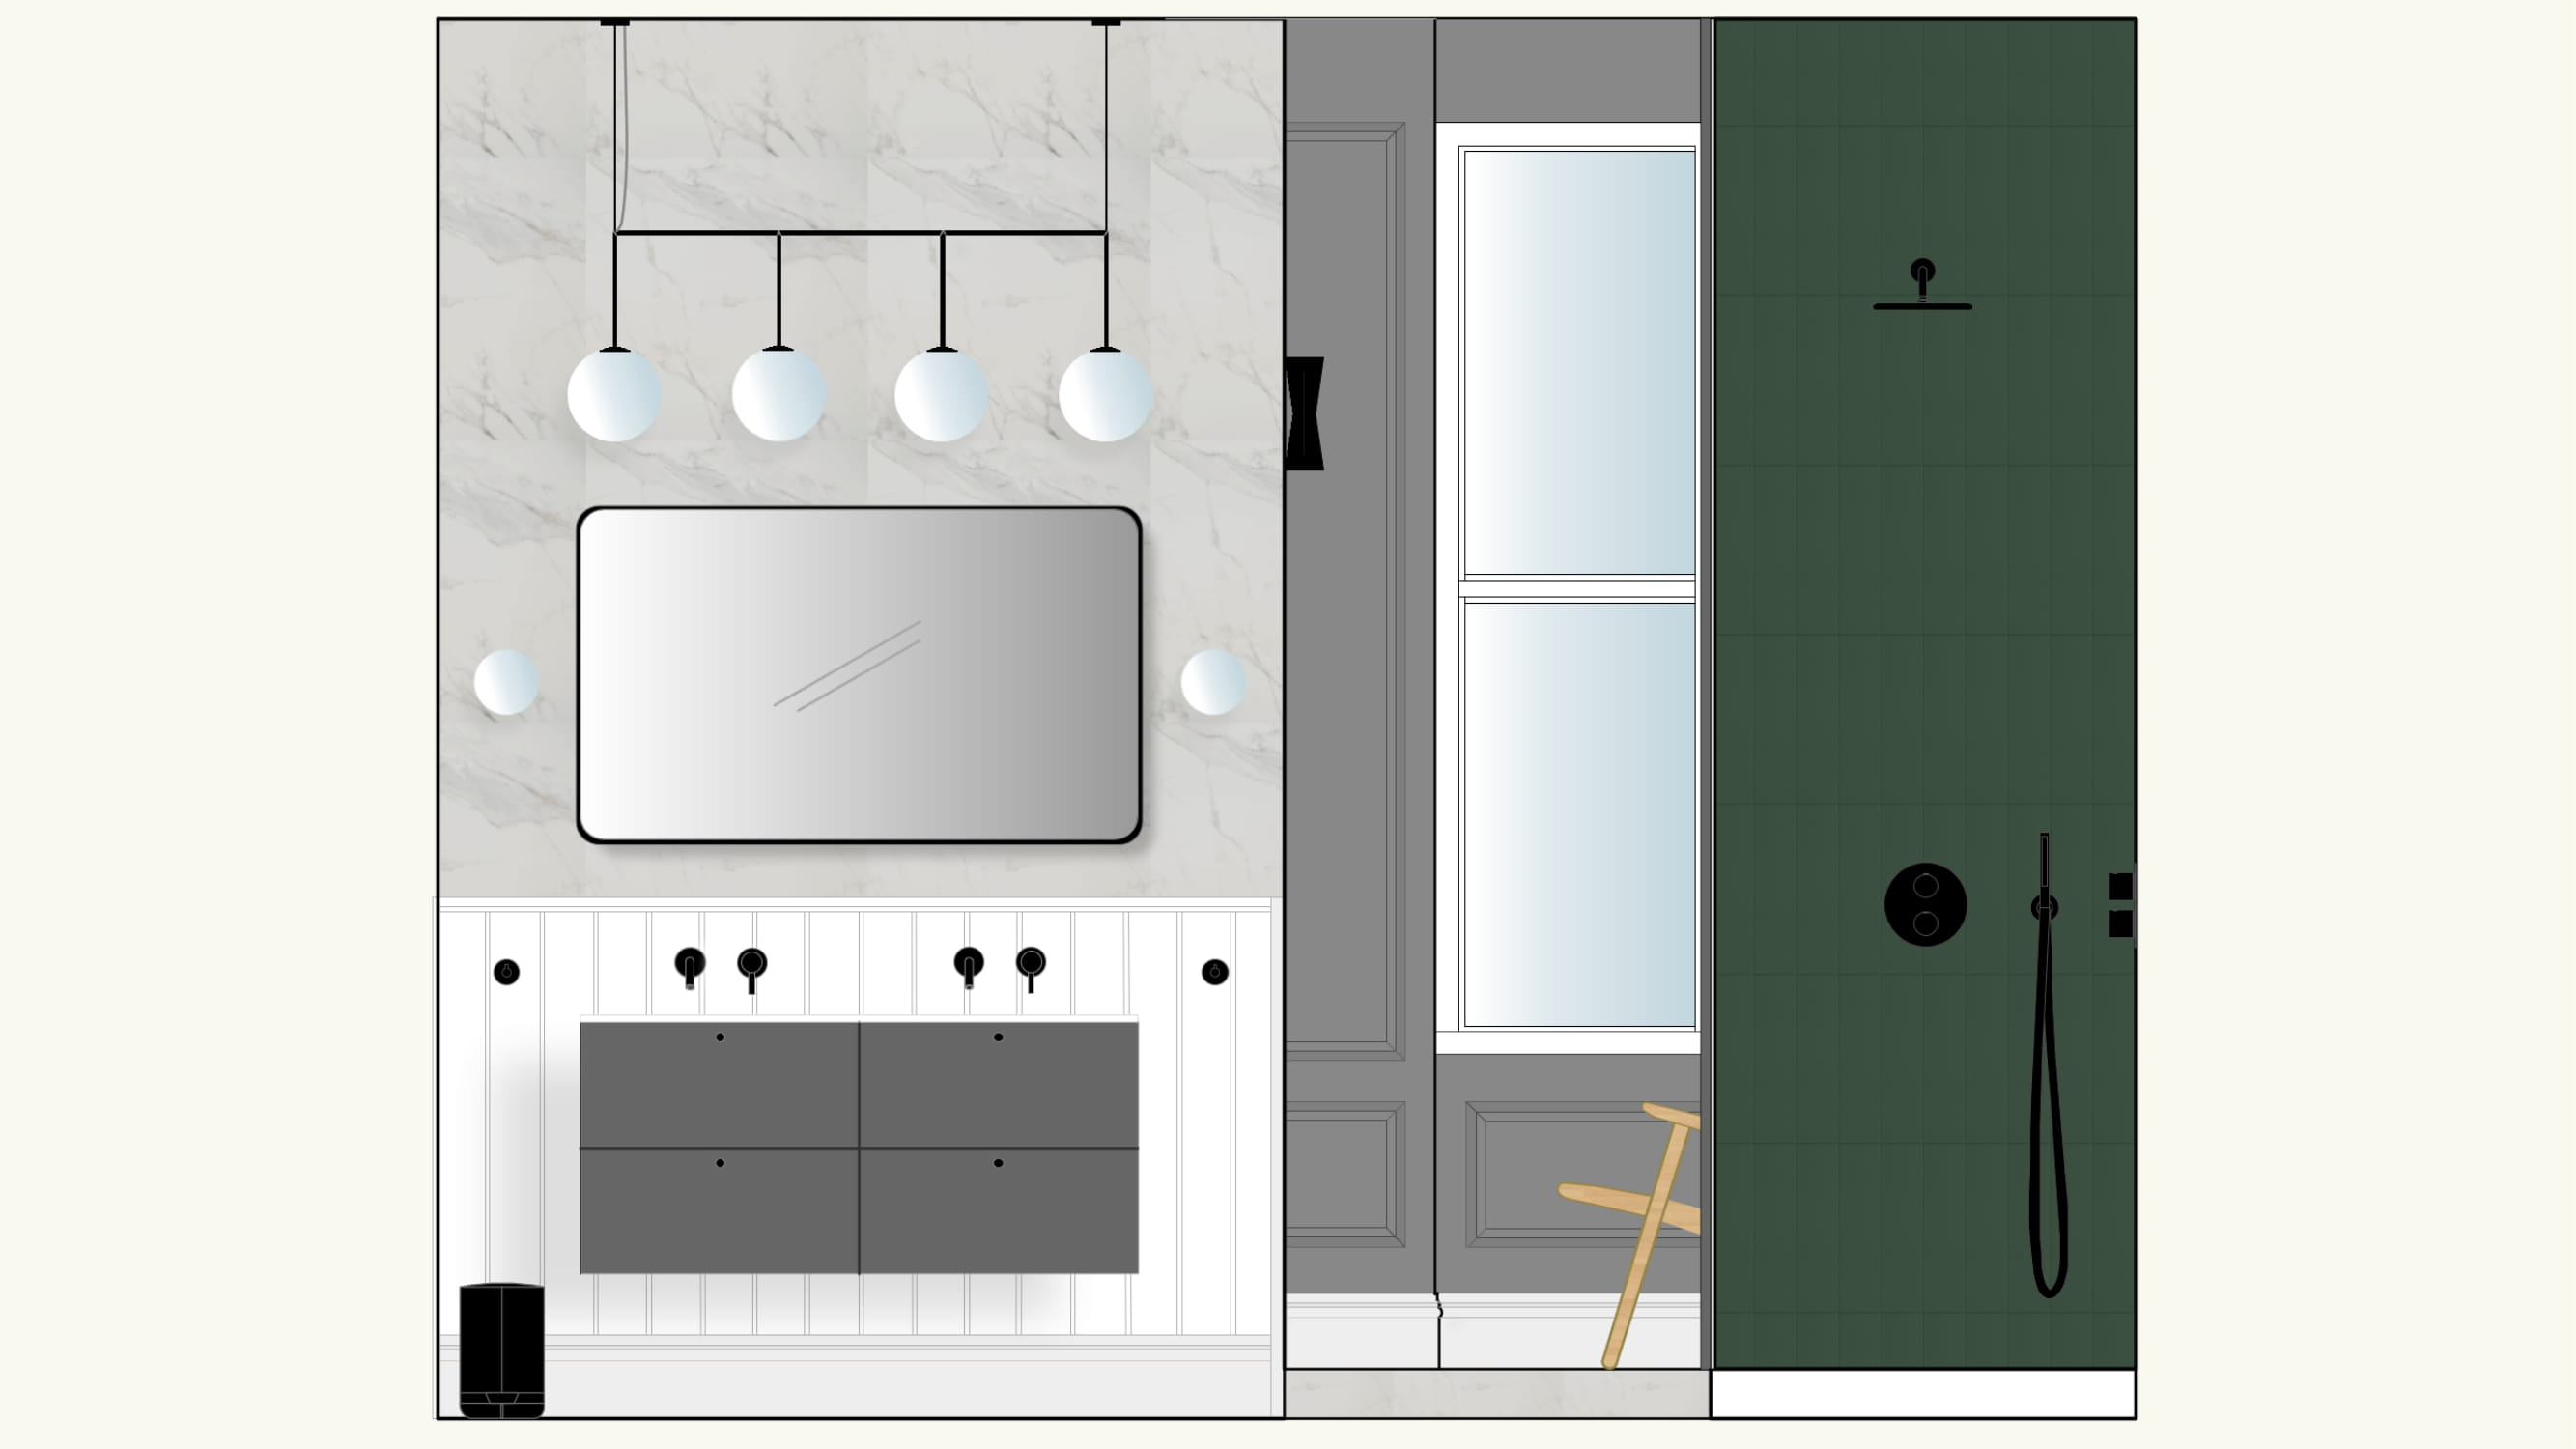 Digital concept board of a bathroom with mirror and lights on the left and a open plan shower on the right